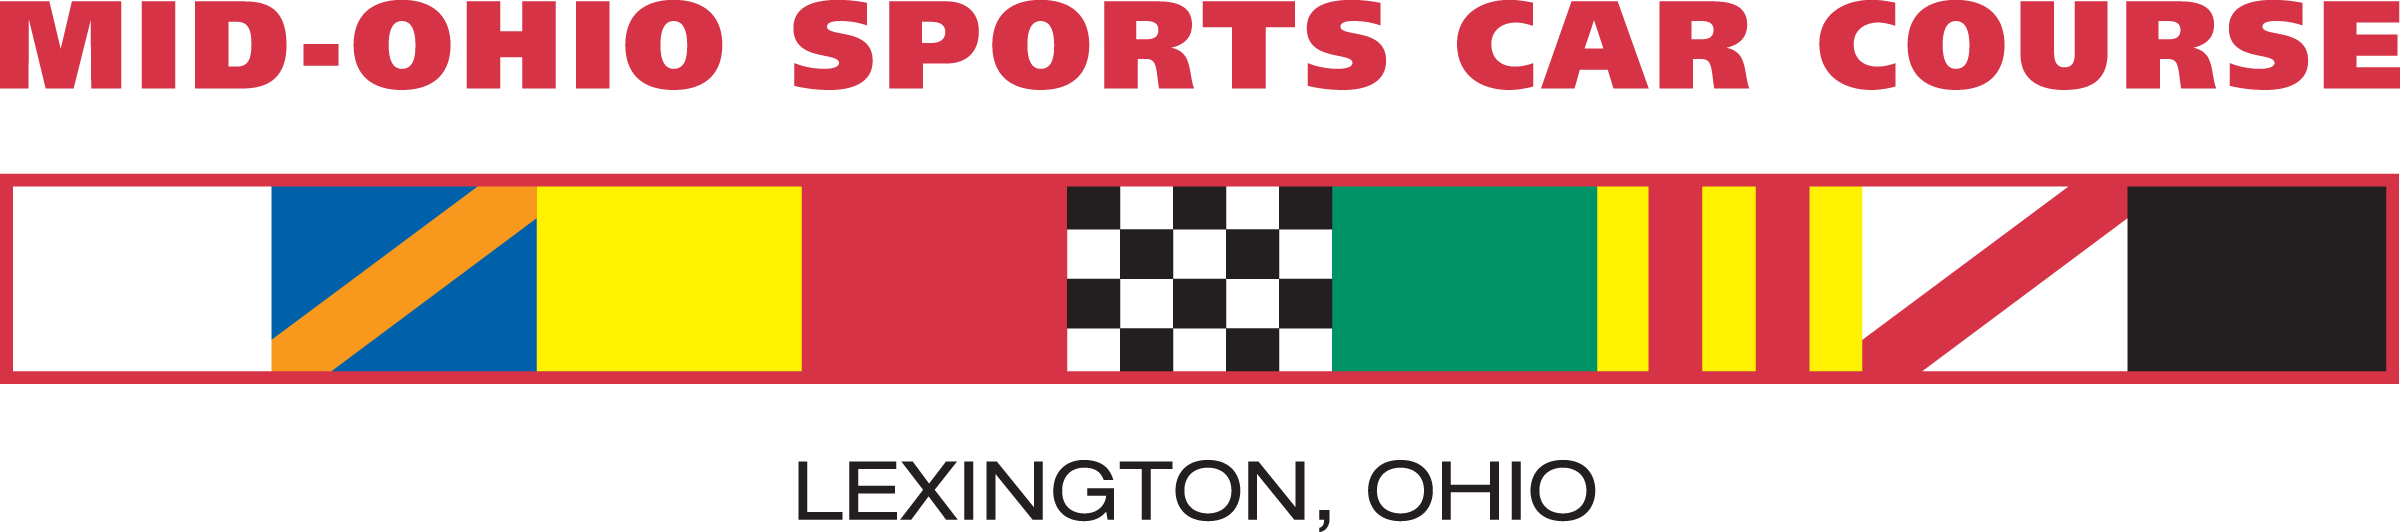 Mid Ohio Sportscar Course >> Mid Ohio Sports Car Course Home